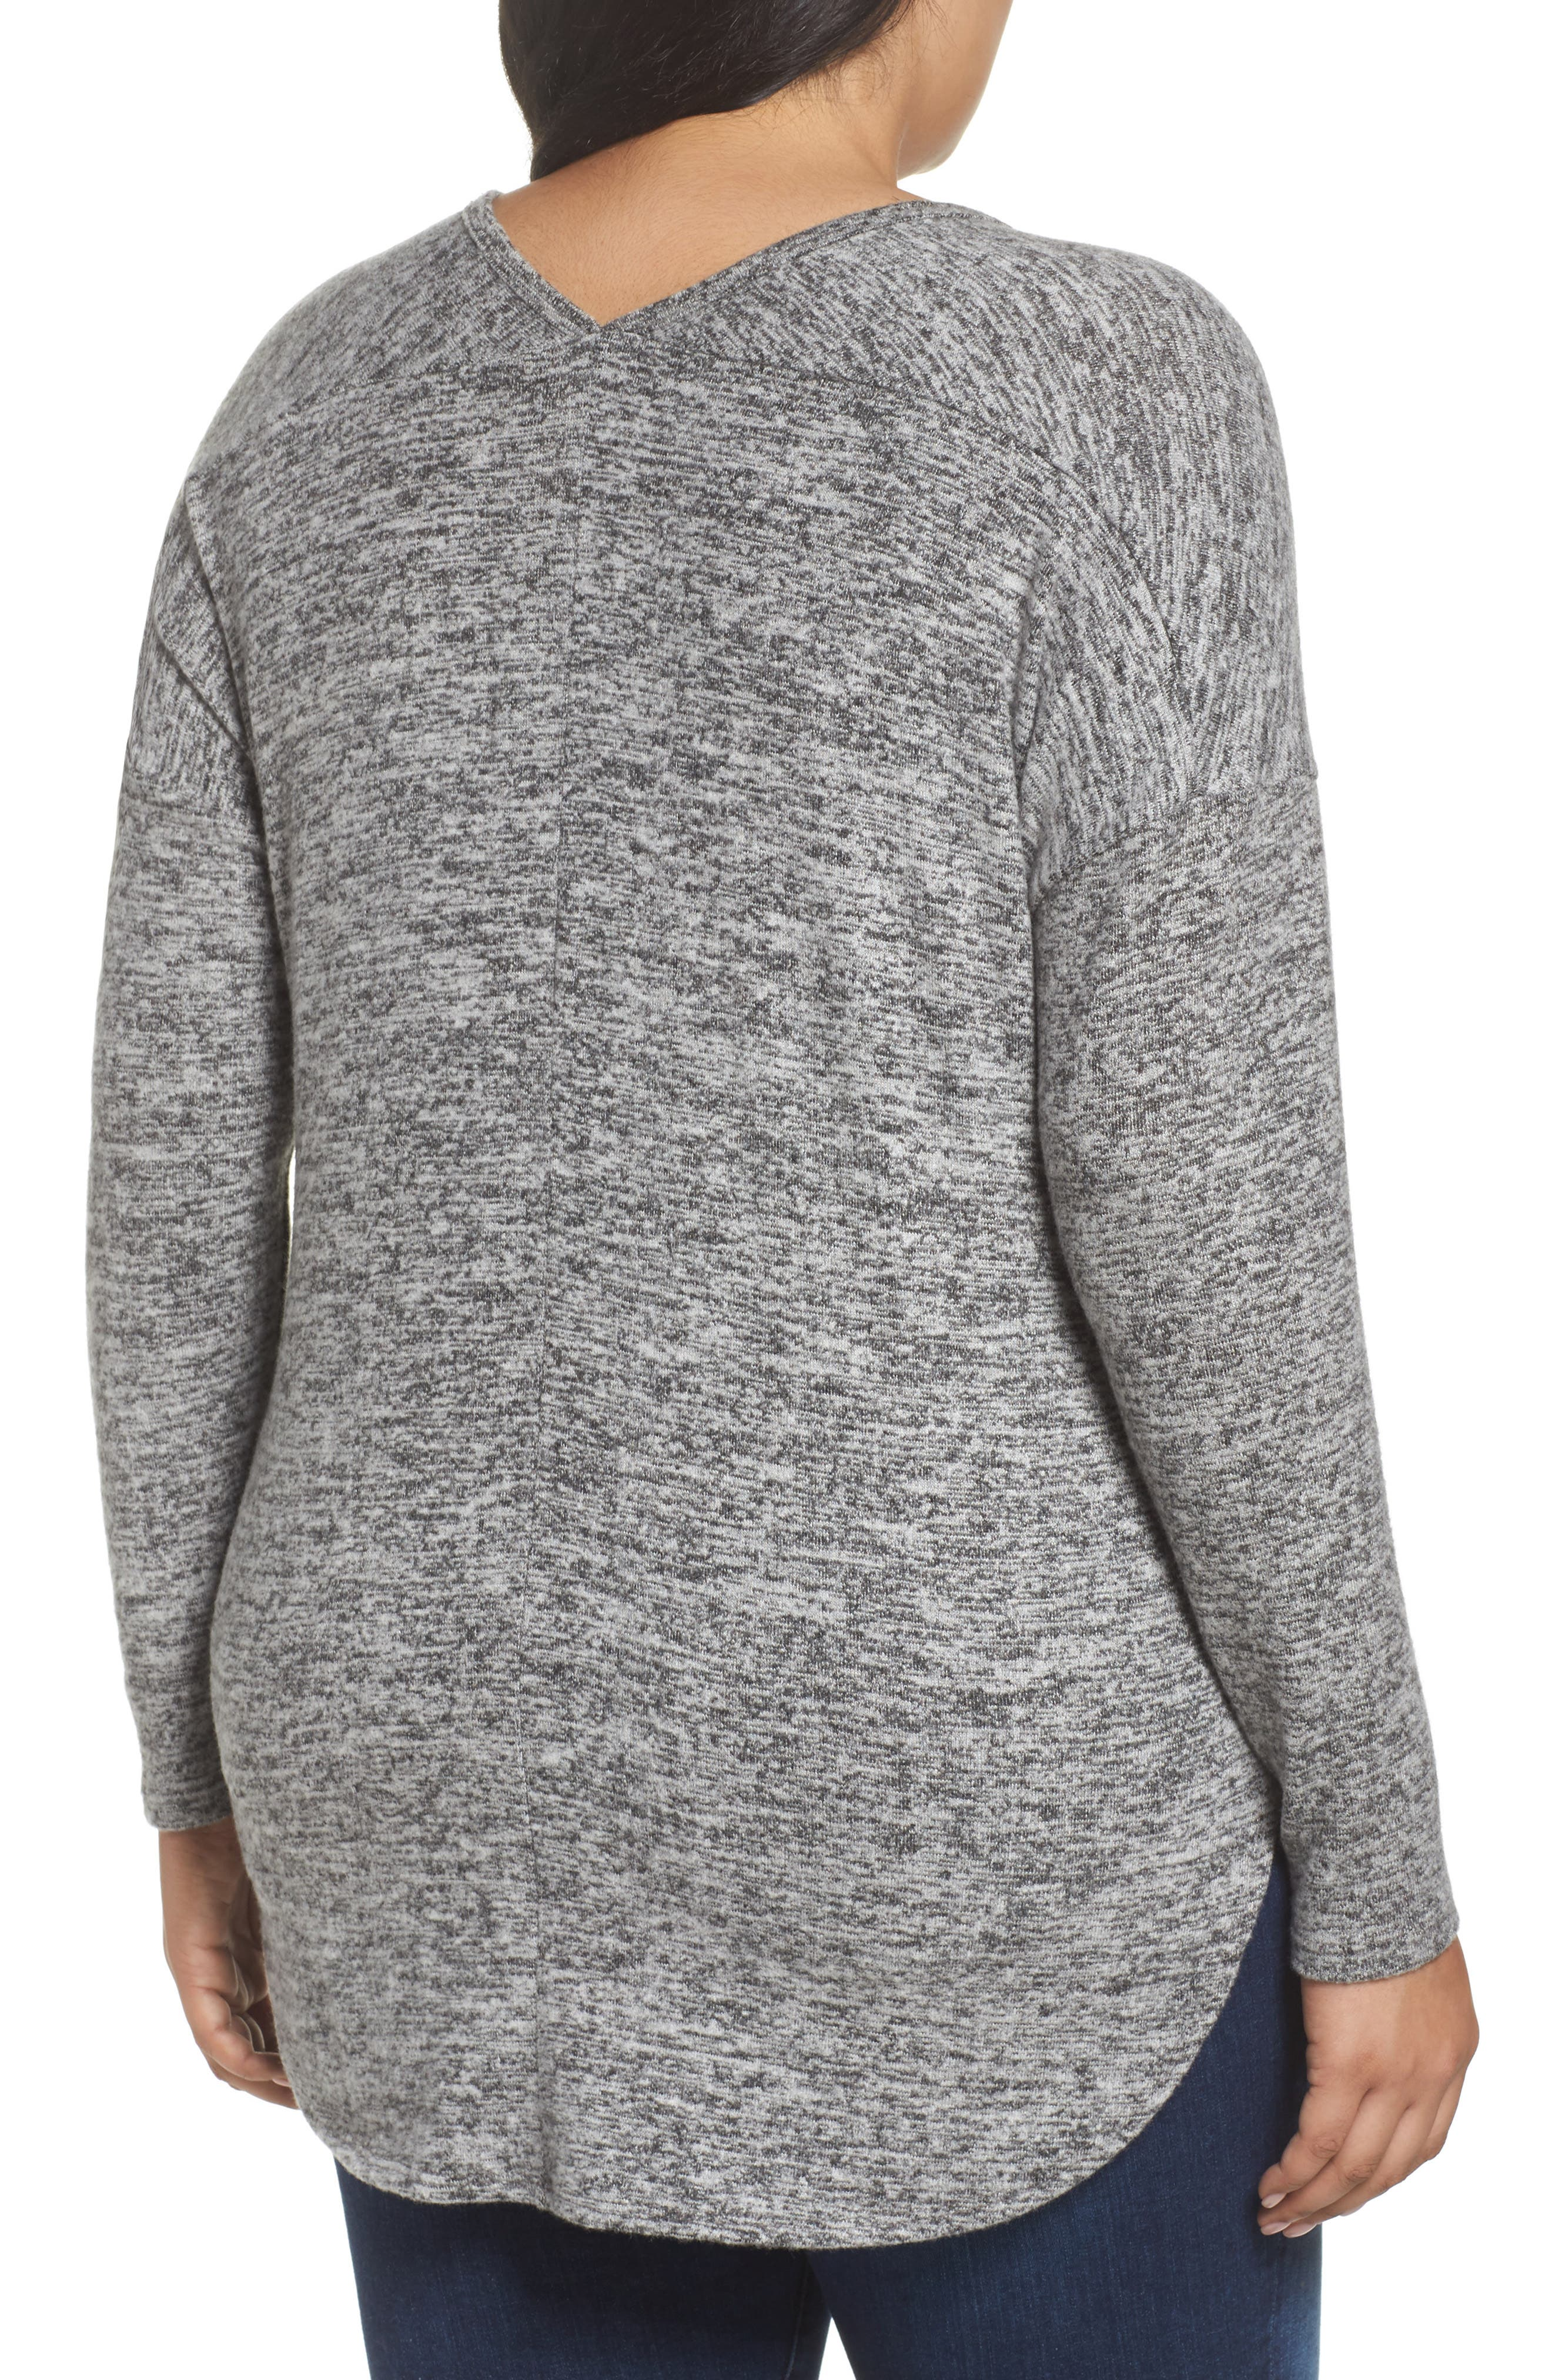 High/Low Knit Top,                             Alternate thumbnail 2, color,                             Charcoal Grey